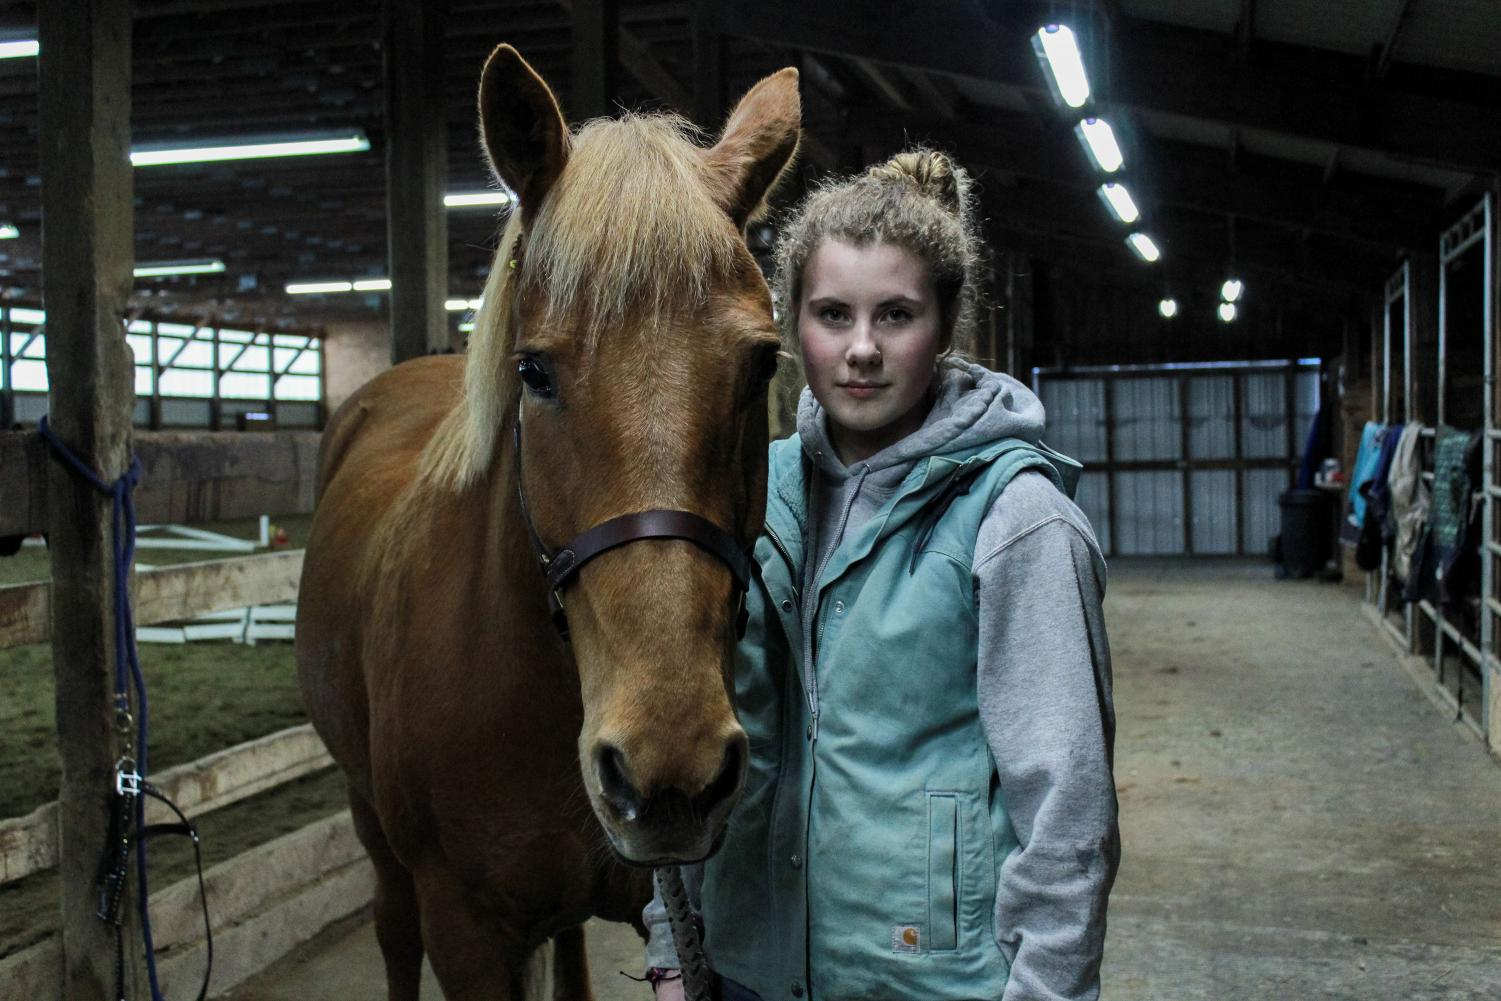 Taylor Sadewic has spent 10 years working with horses. The sophomore want to pursue a career in equine therapy.